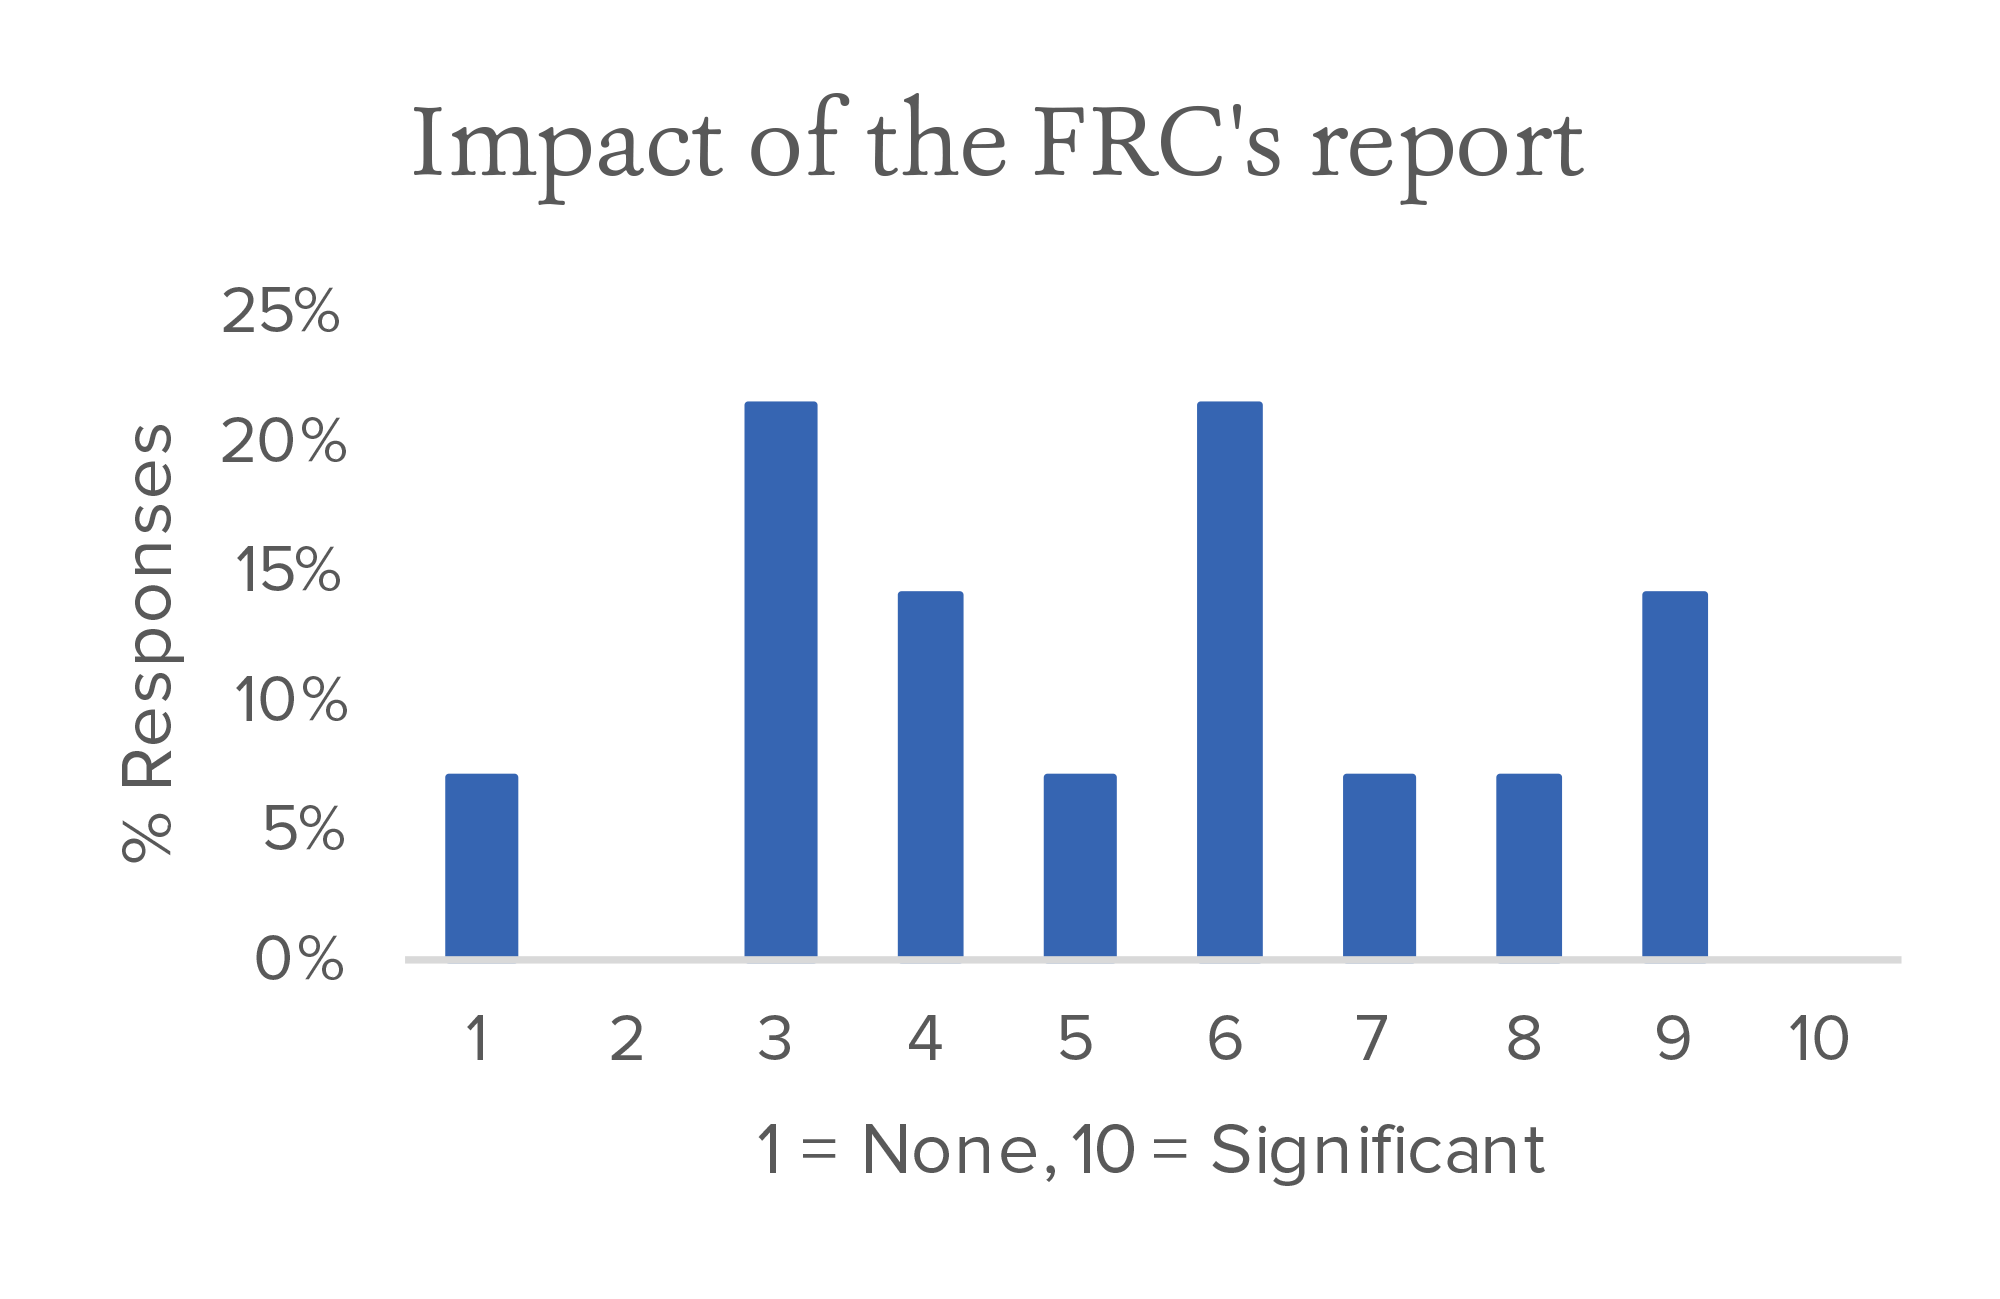 Impact of the FRCs report